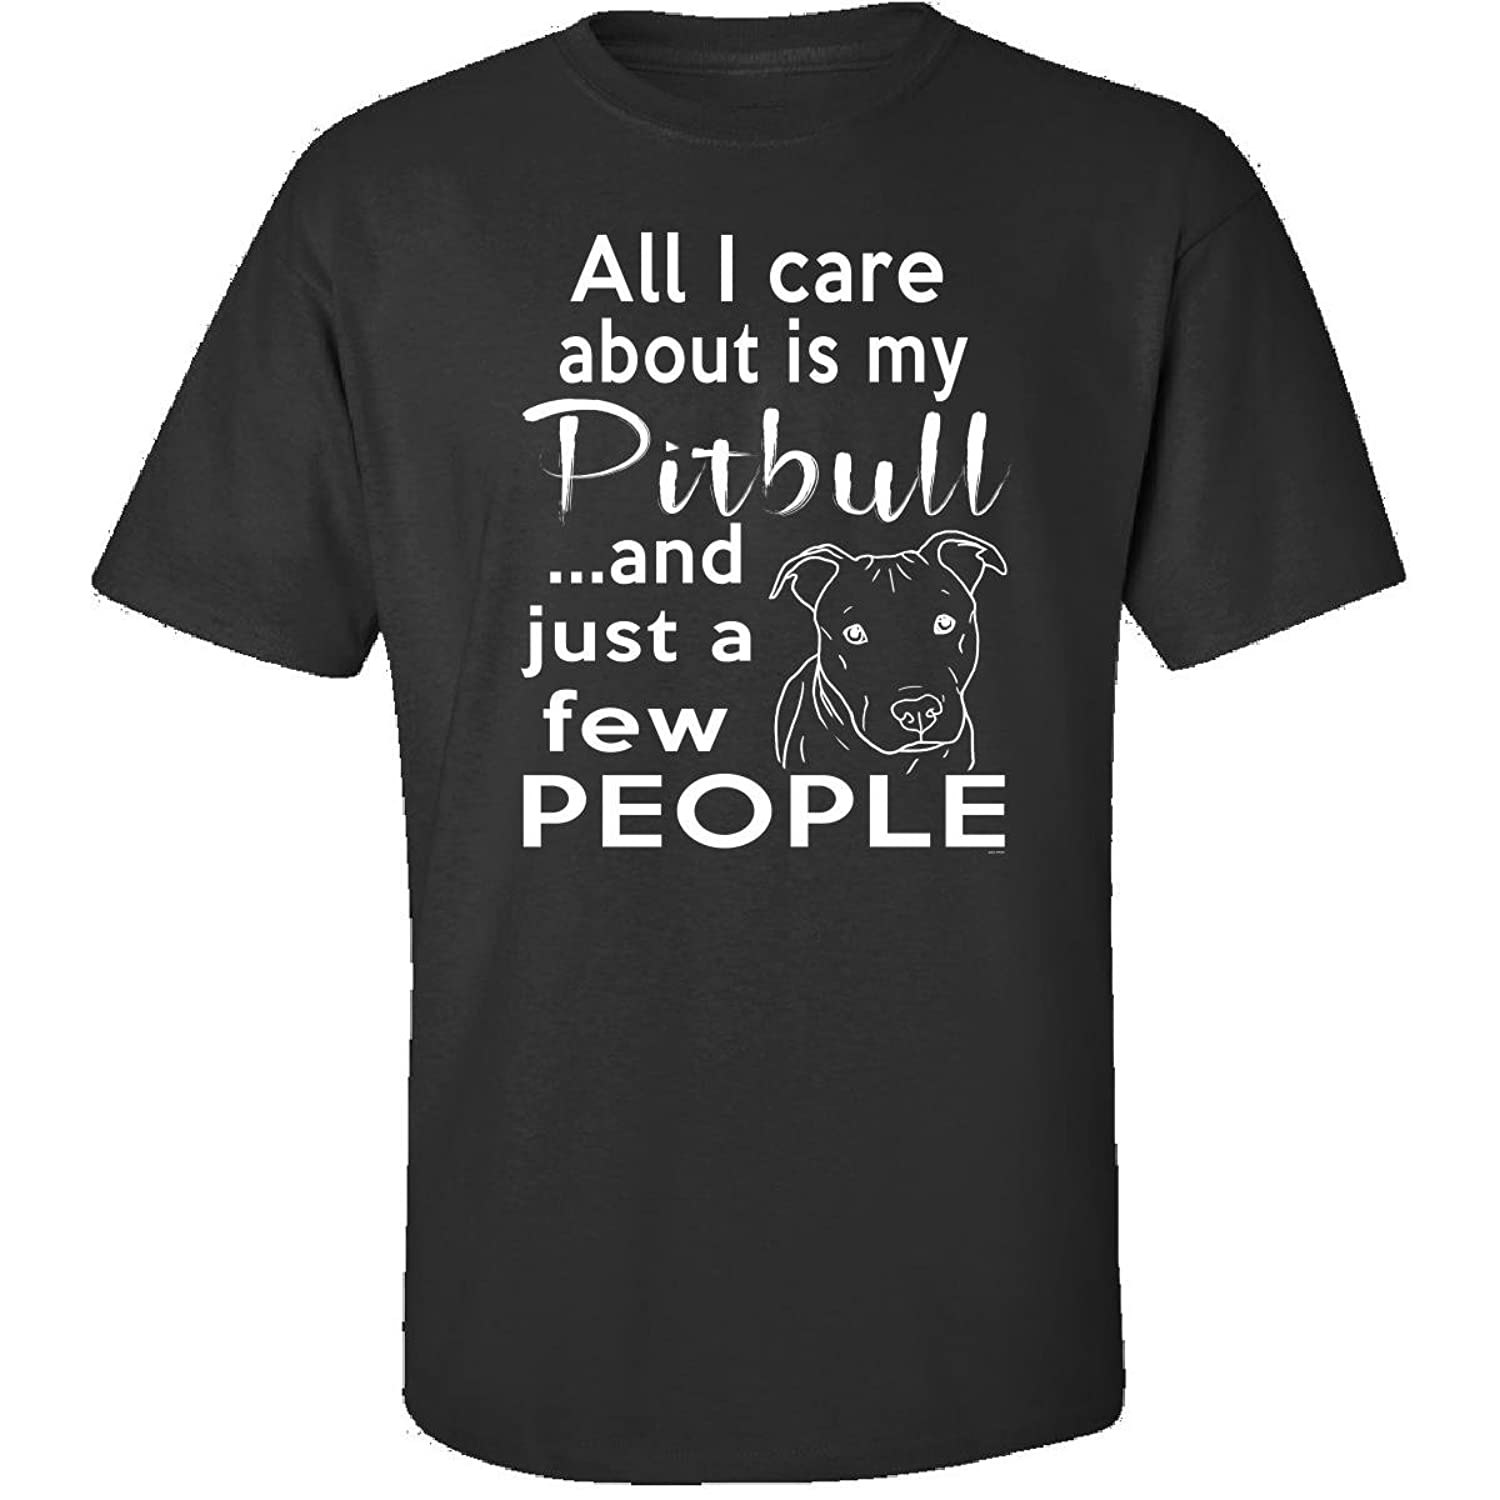 Pitbull Gifts For Dog Owners Women Or Men - Adult Shirt